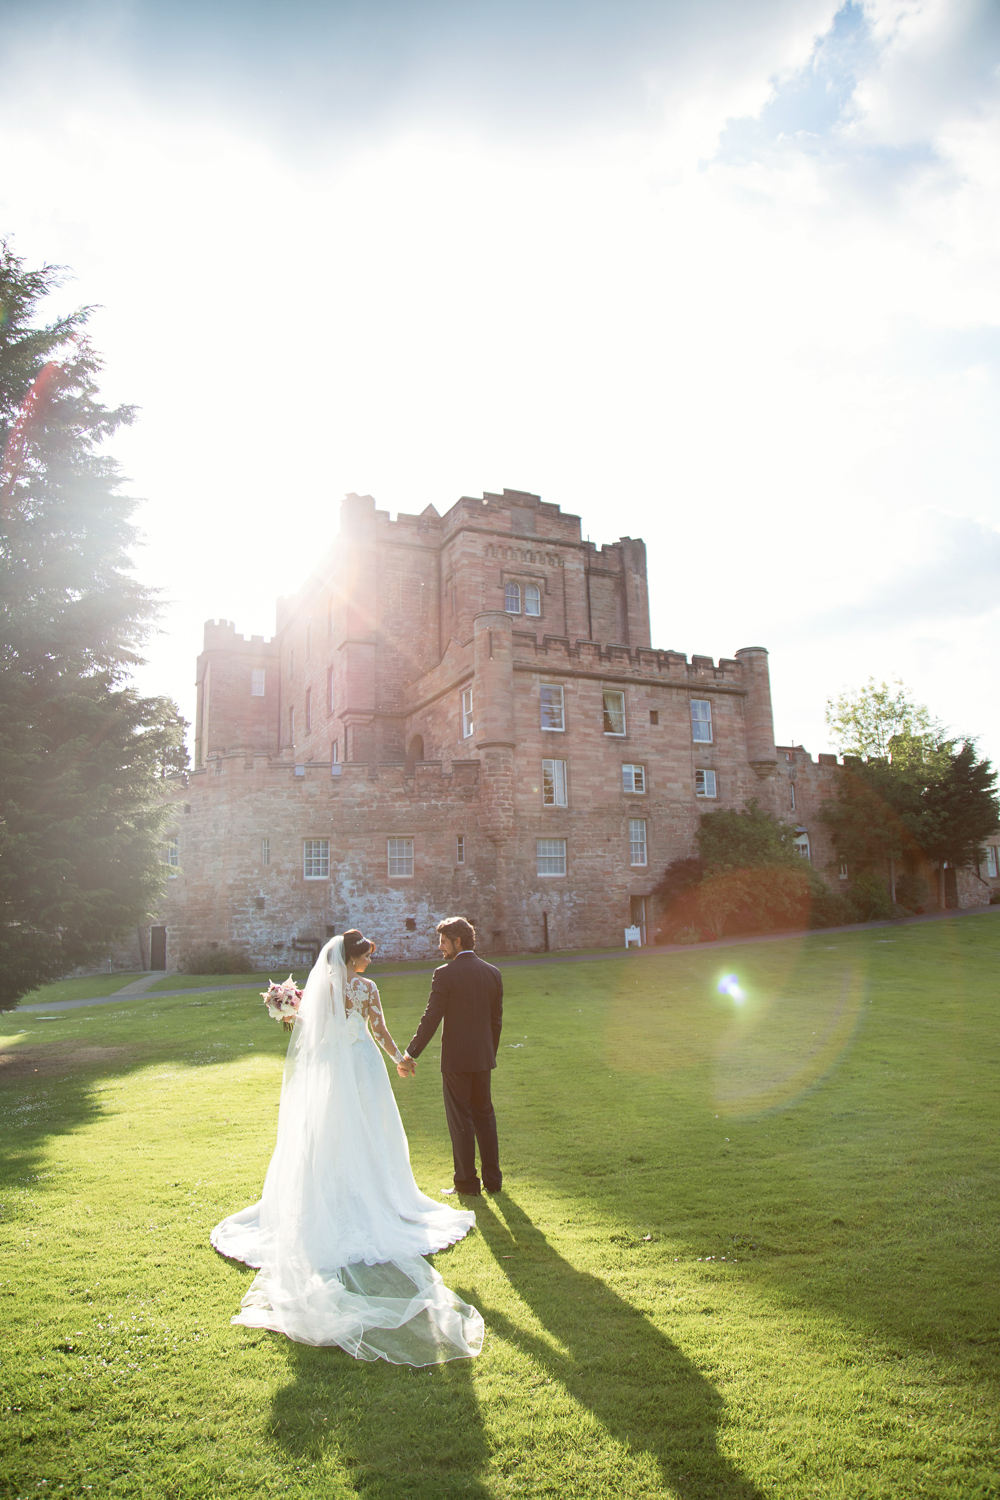 Romantic sunset of bride and groom at Dalhousie Castle